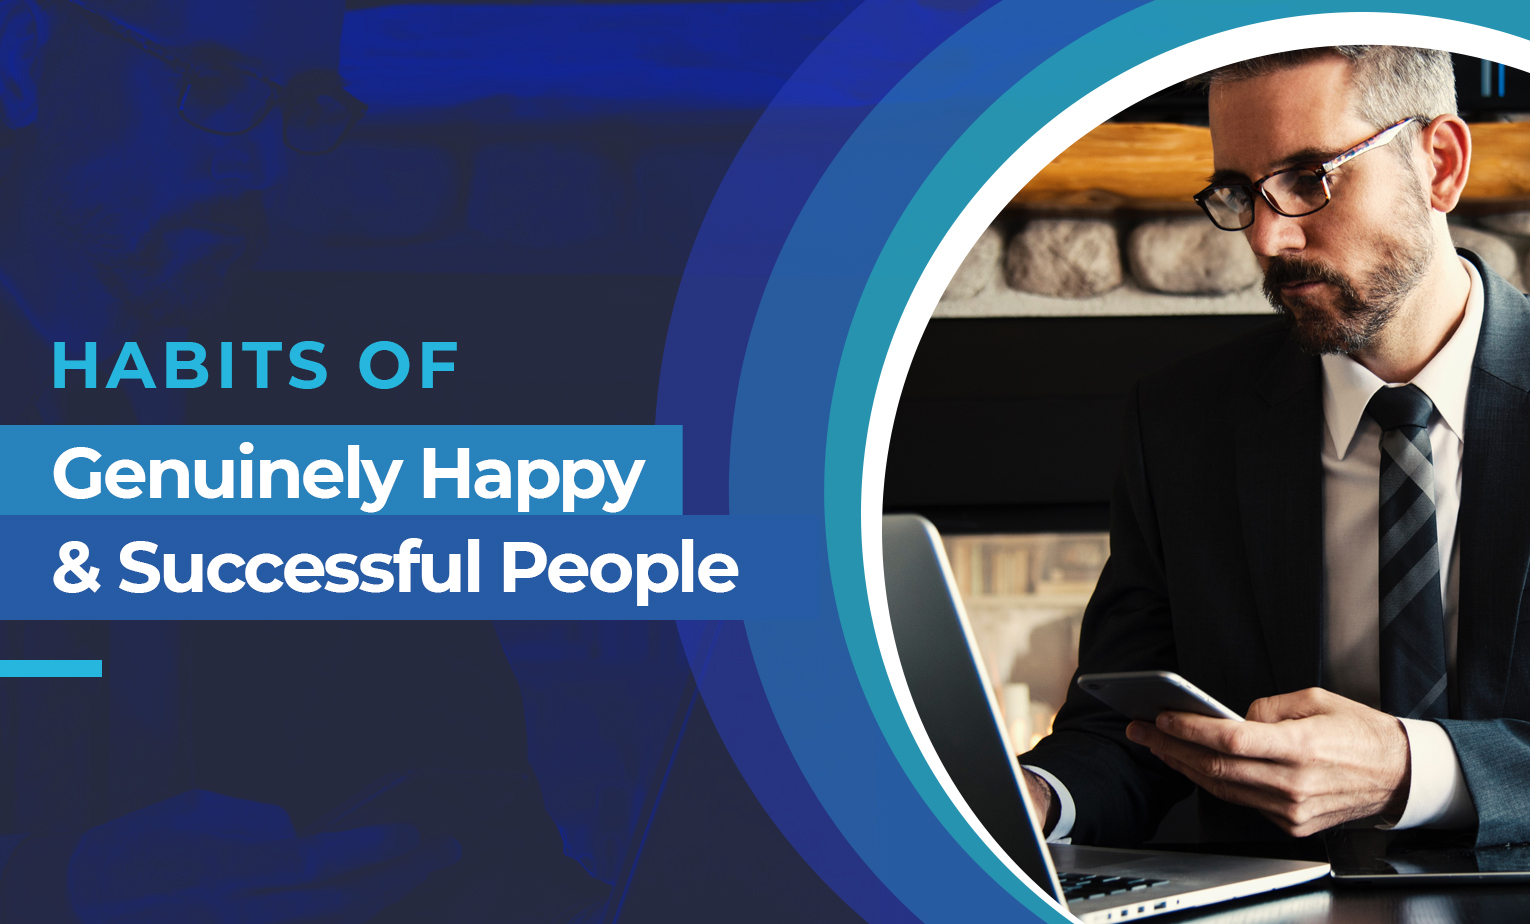 Habits of Genuinely Happy and Successful People